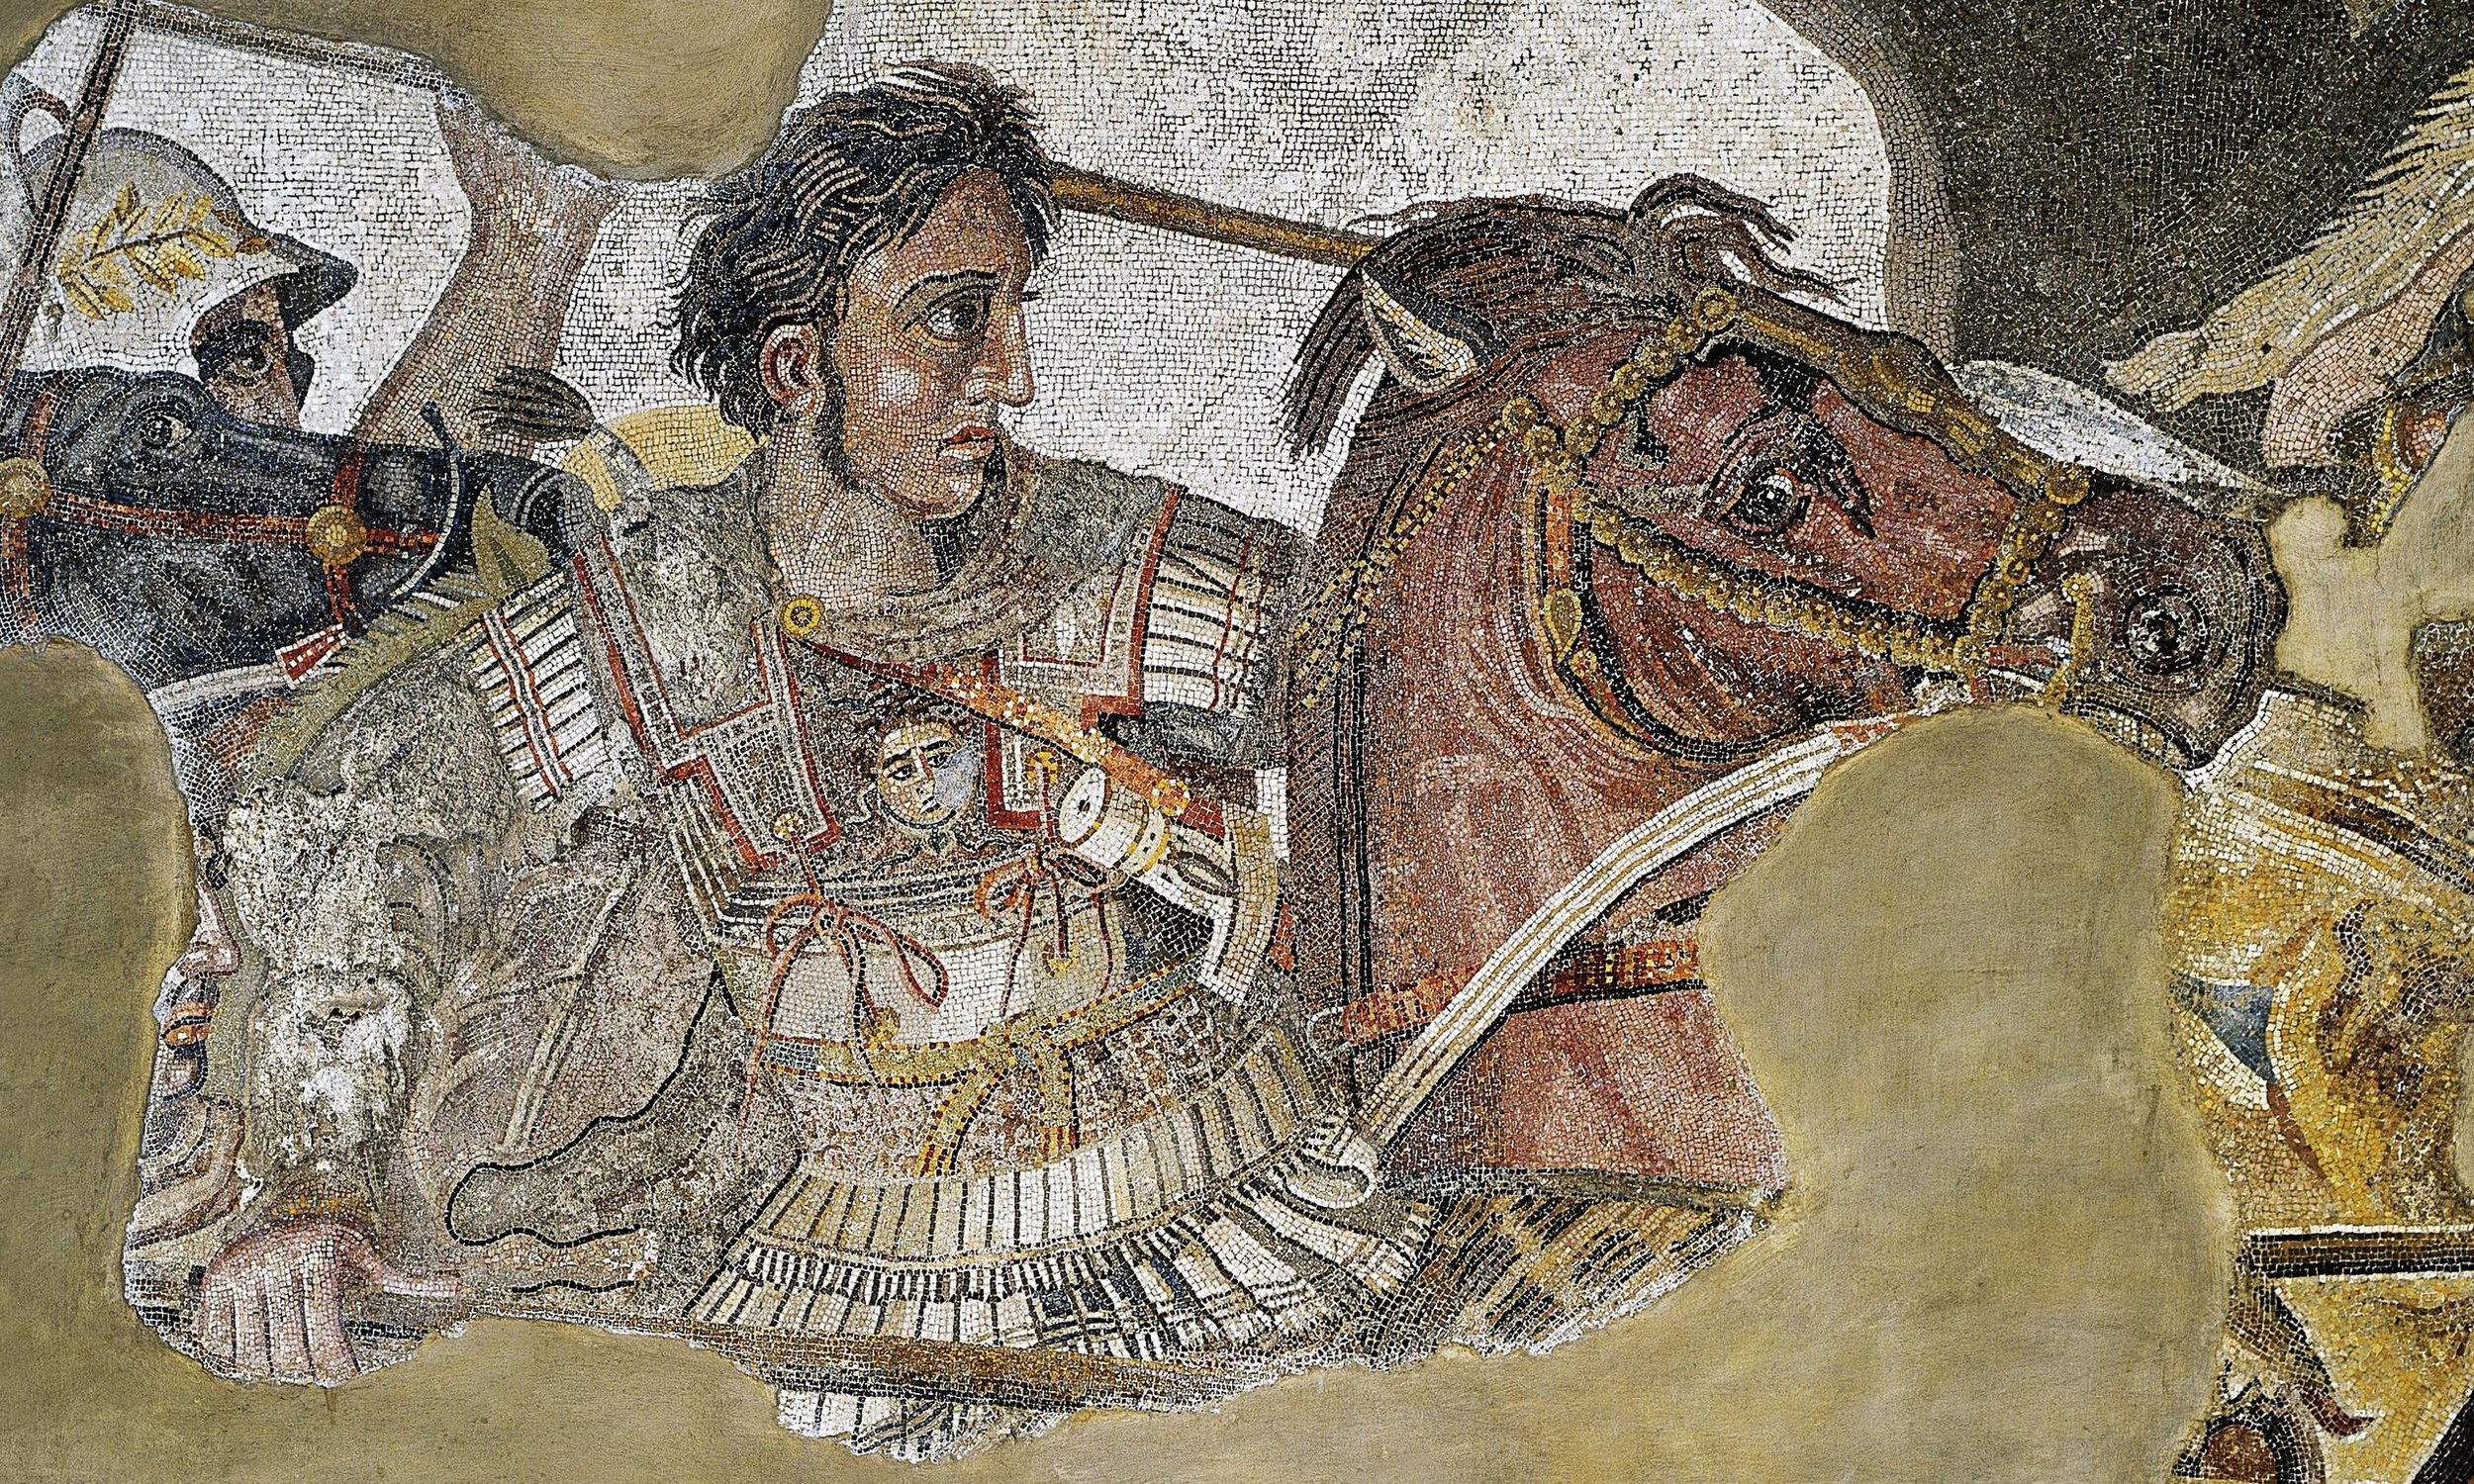 (Above: an ancient mosaic of Alexander the Great, dated around 100 BCE)